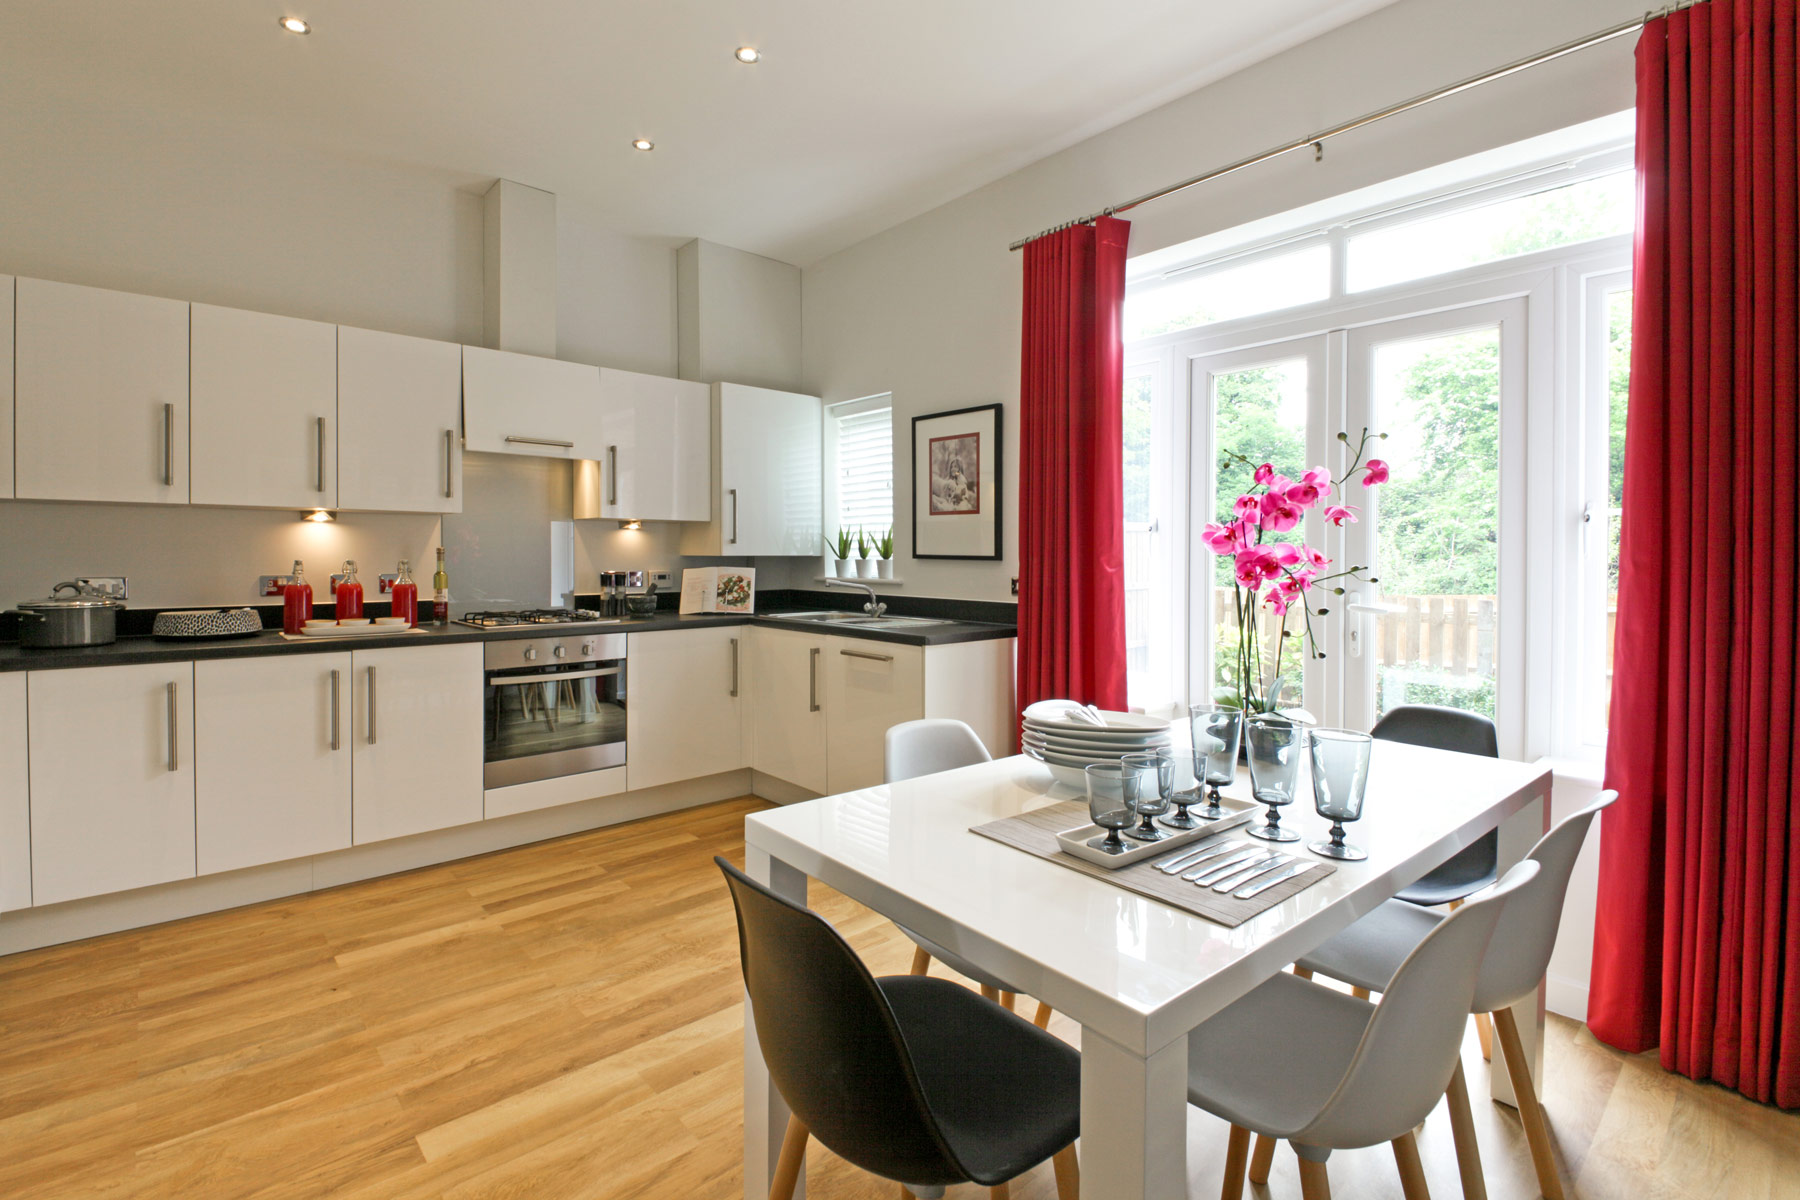 A typical Taylor Wimpey kitchen/dining area.